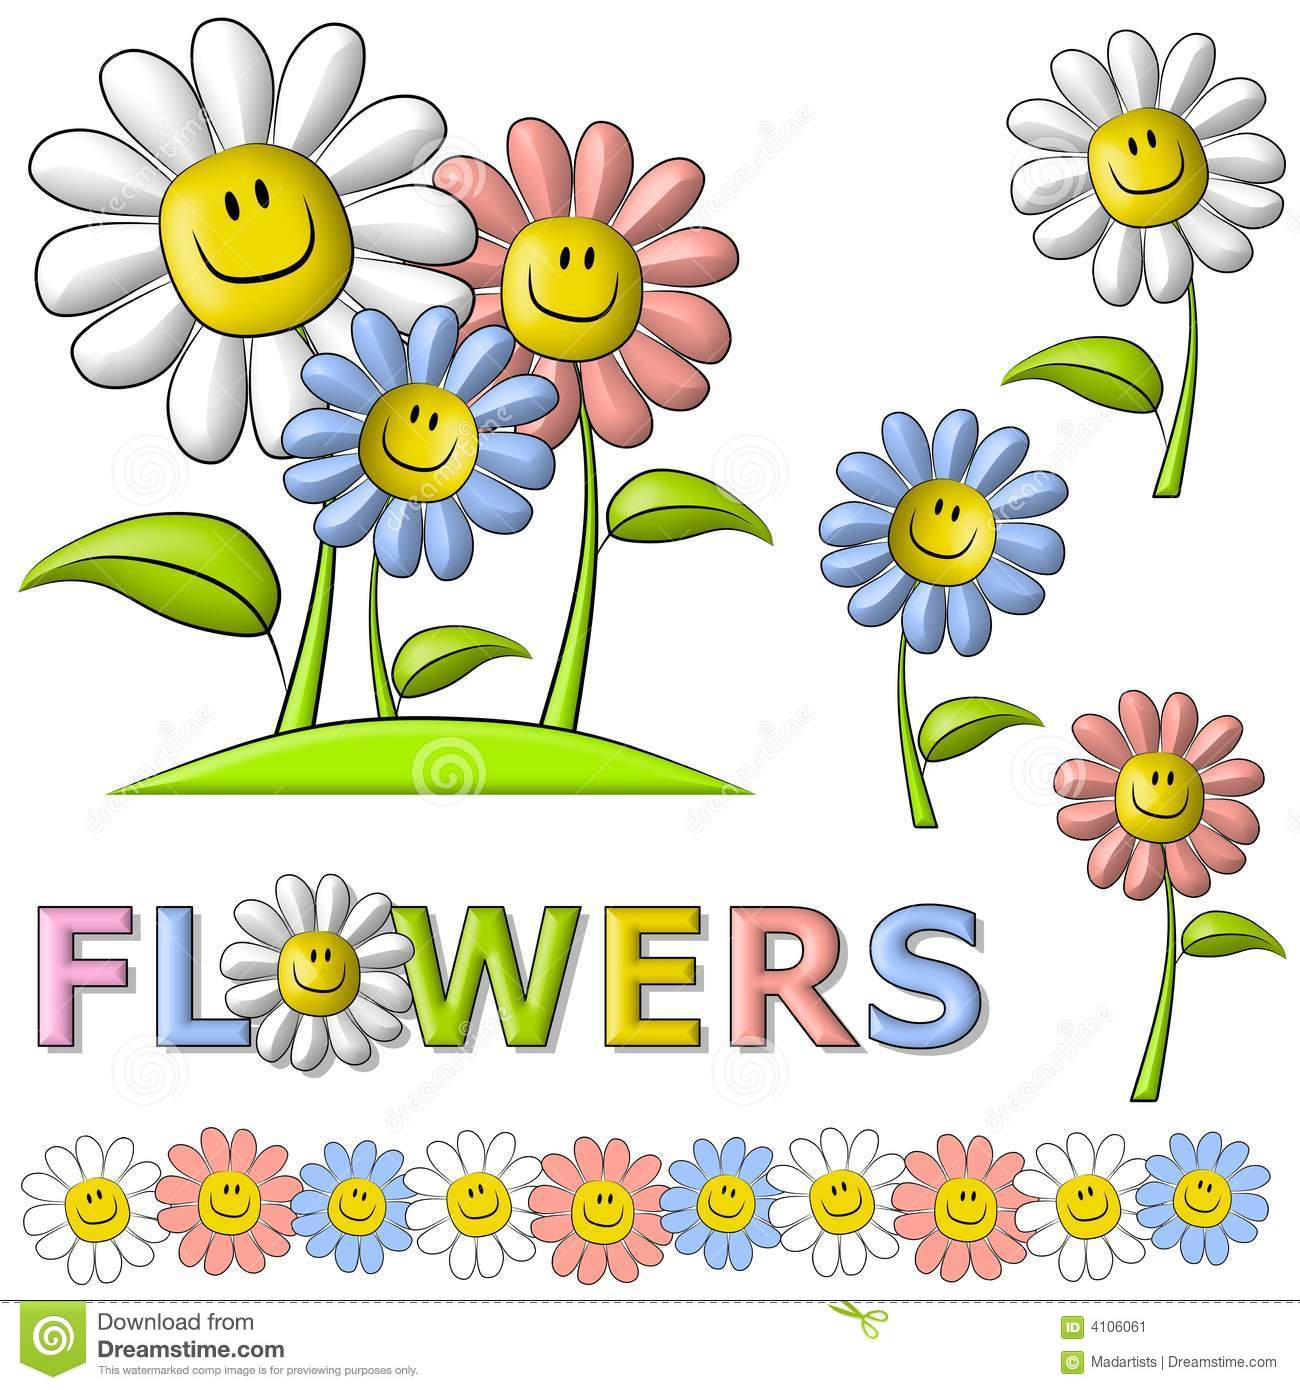 Spring smiley face happy flowers stock illustration illustration spring smiley face happy flowers mightylinksfo